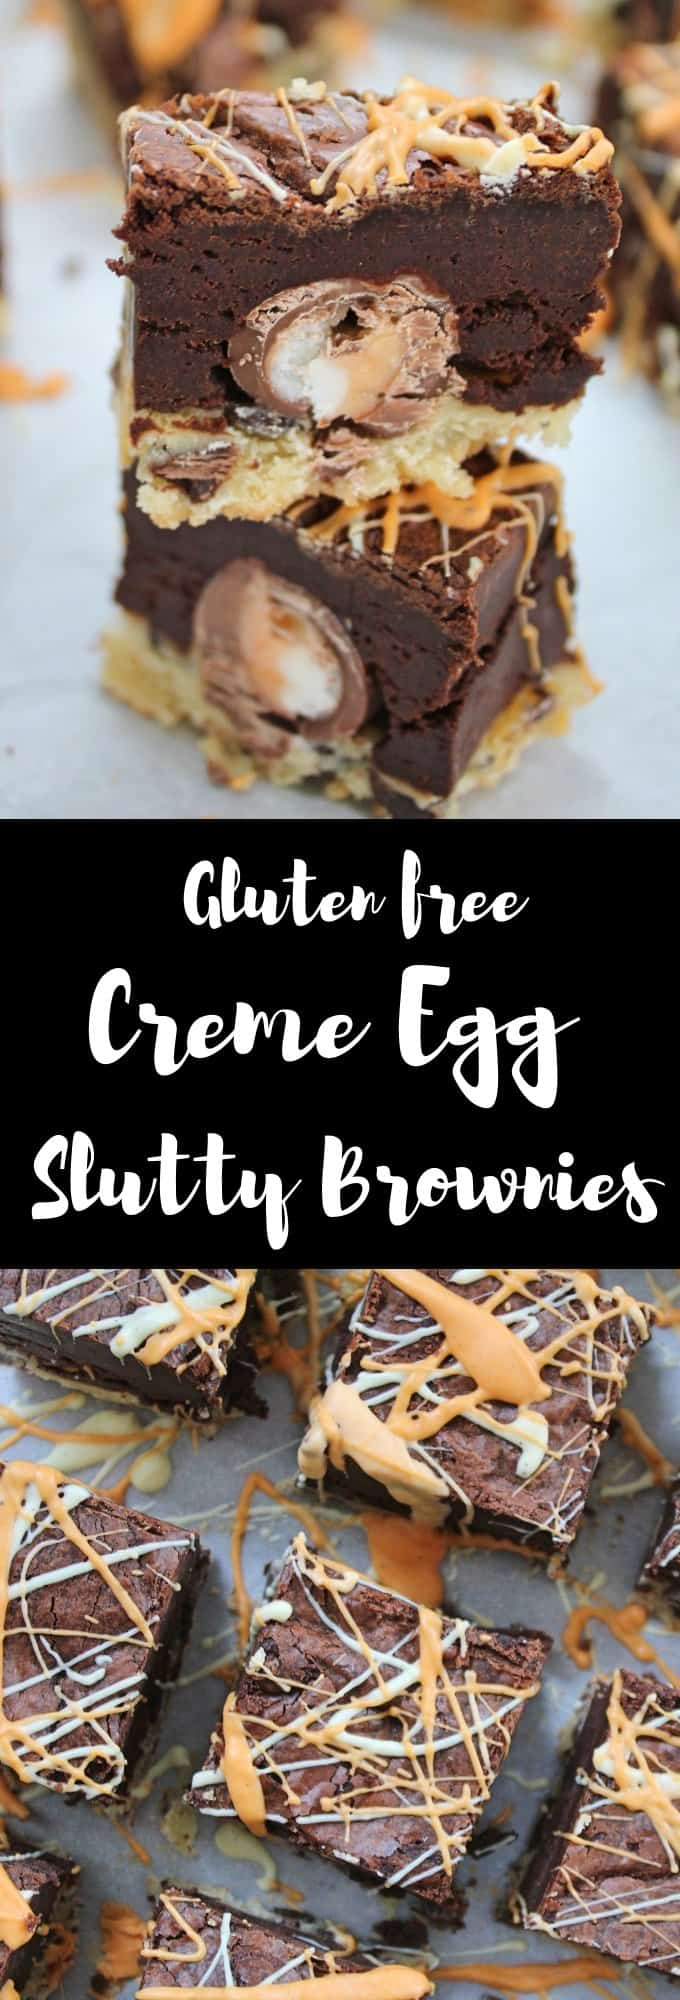 gluten free creme egg slutty brownies recipe easter coelliac